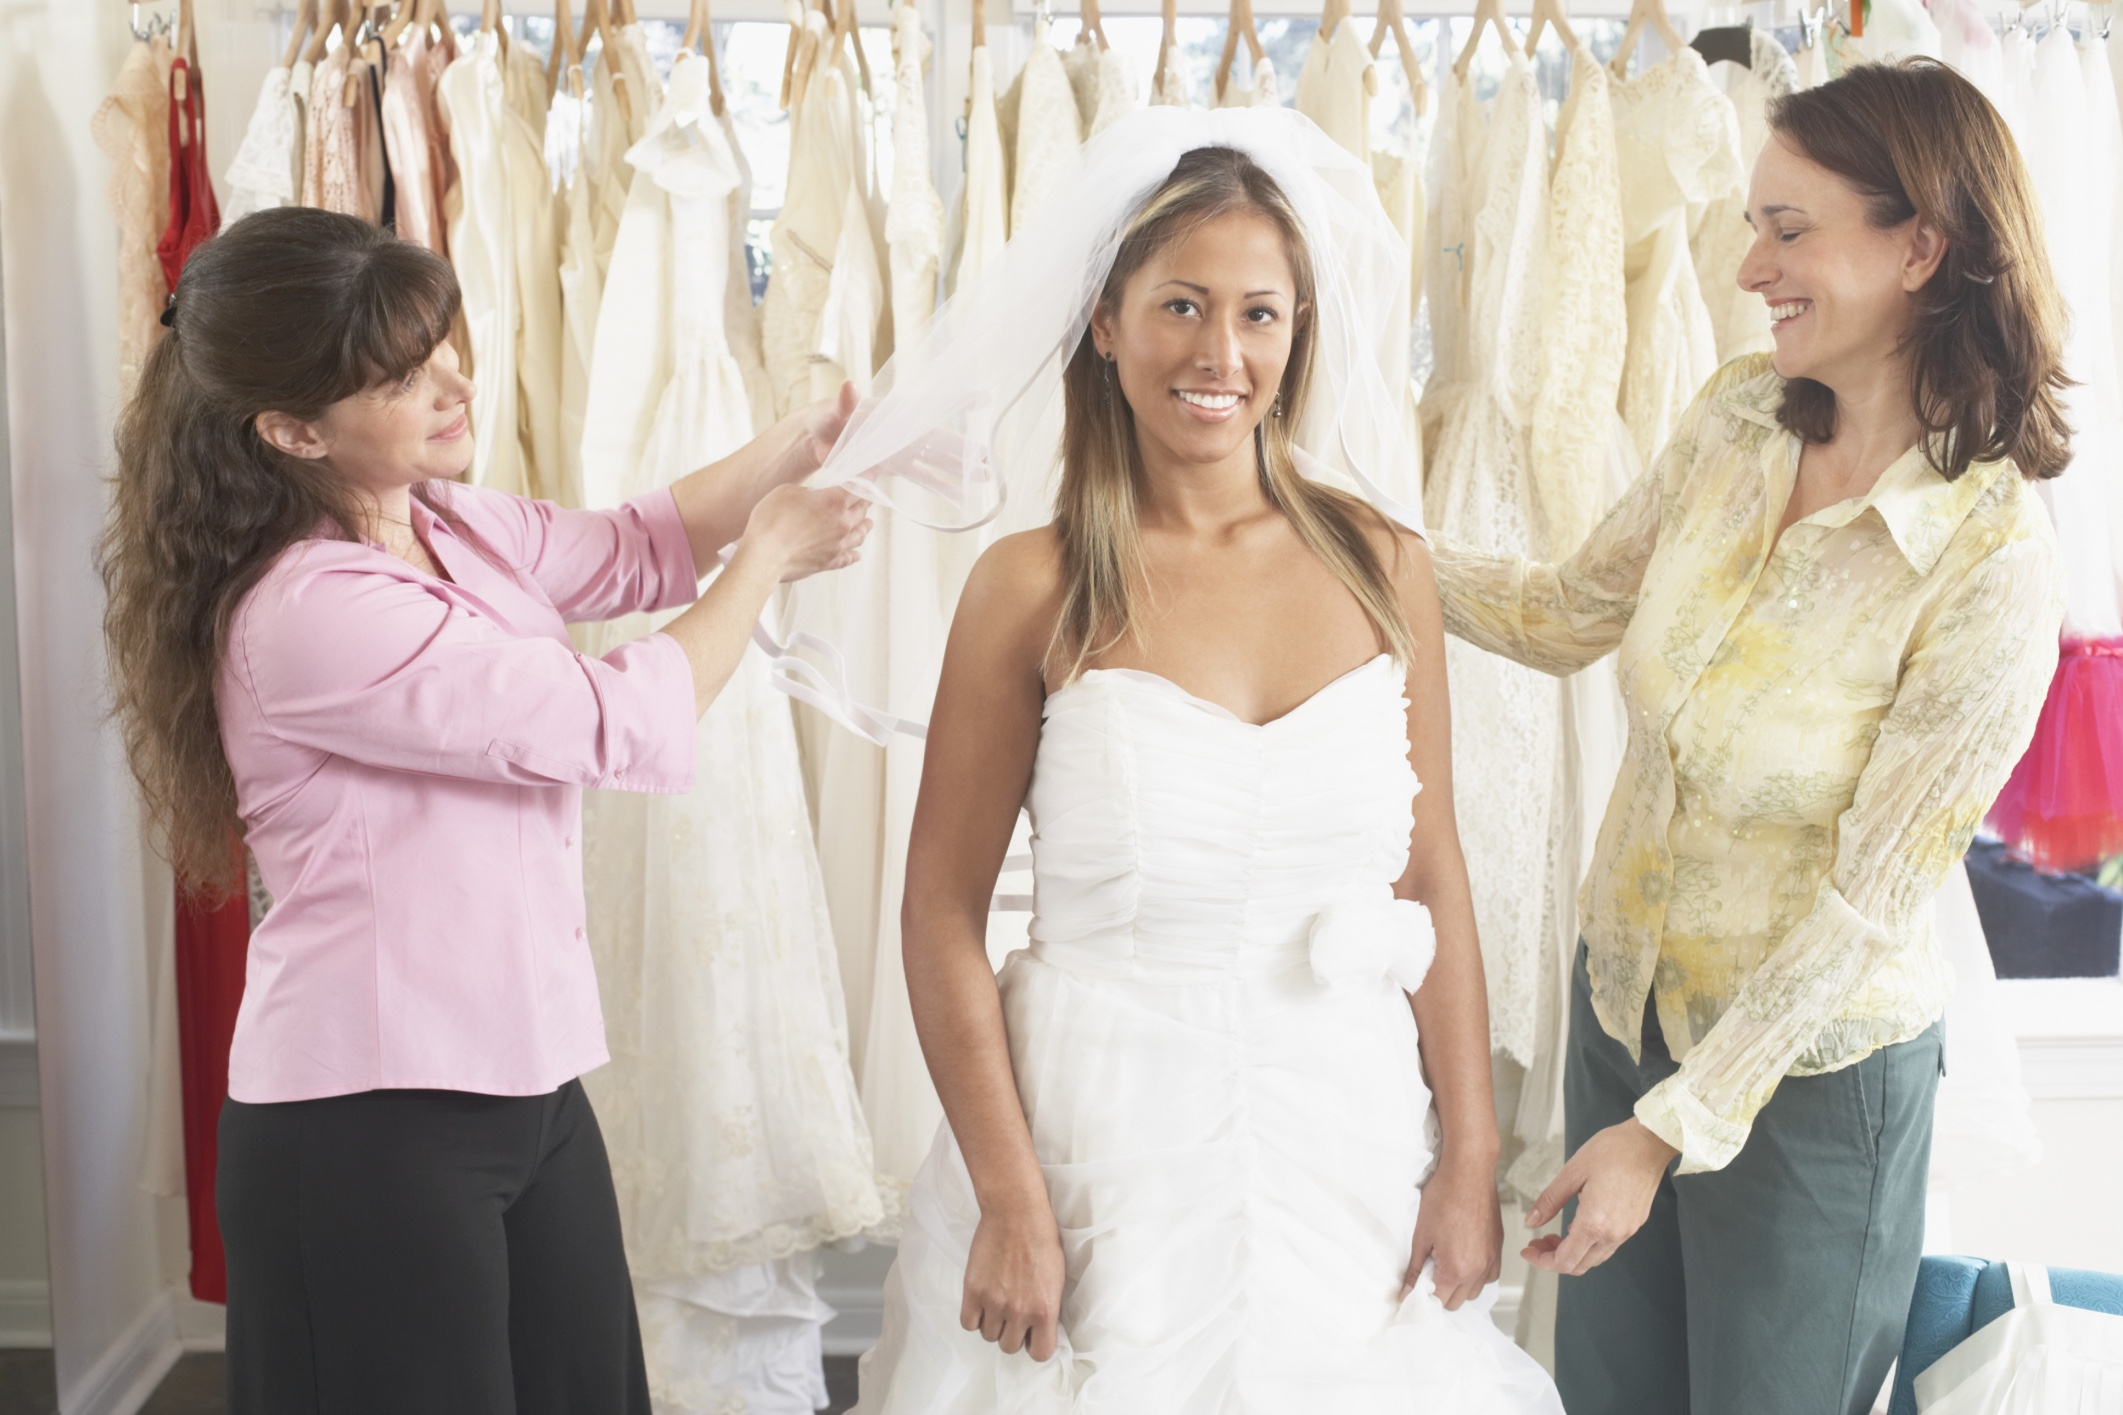 Finding the perfect wedding dress get ordained for How do i get ordained to perform wedding ceremonies